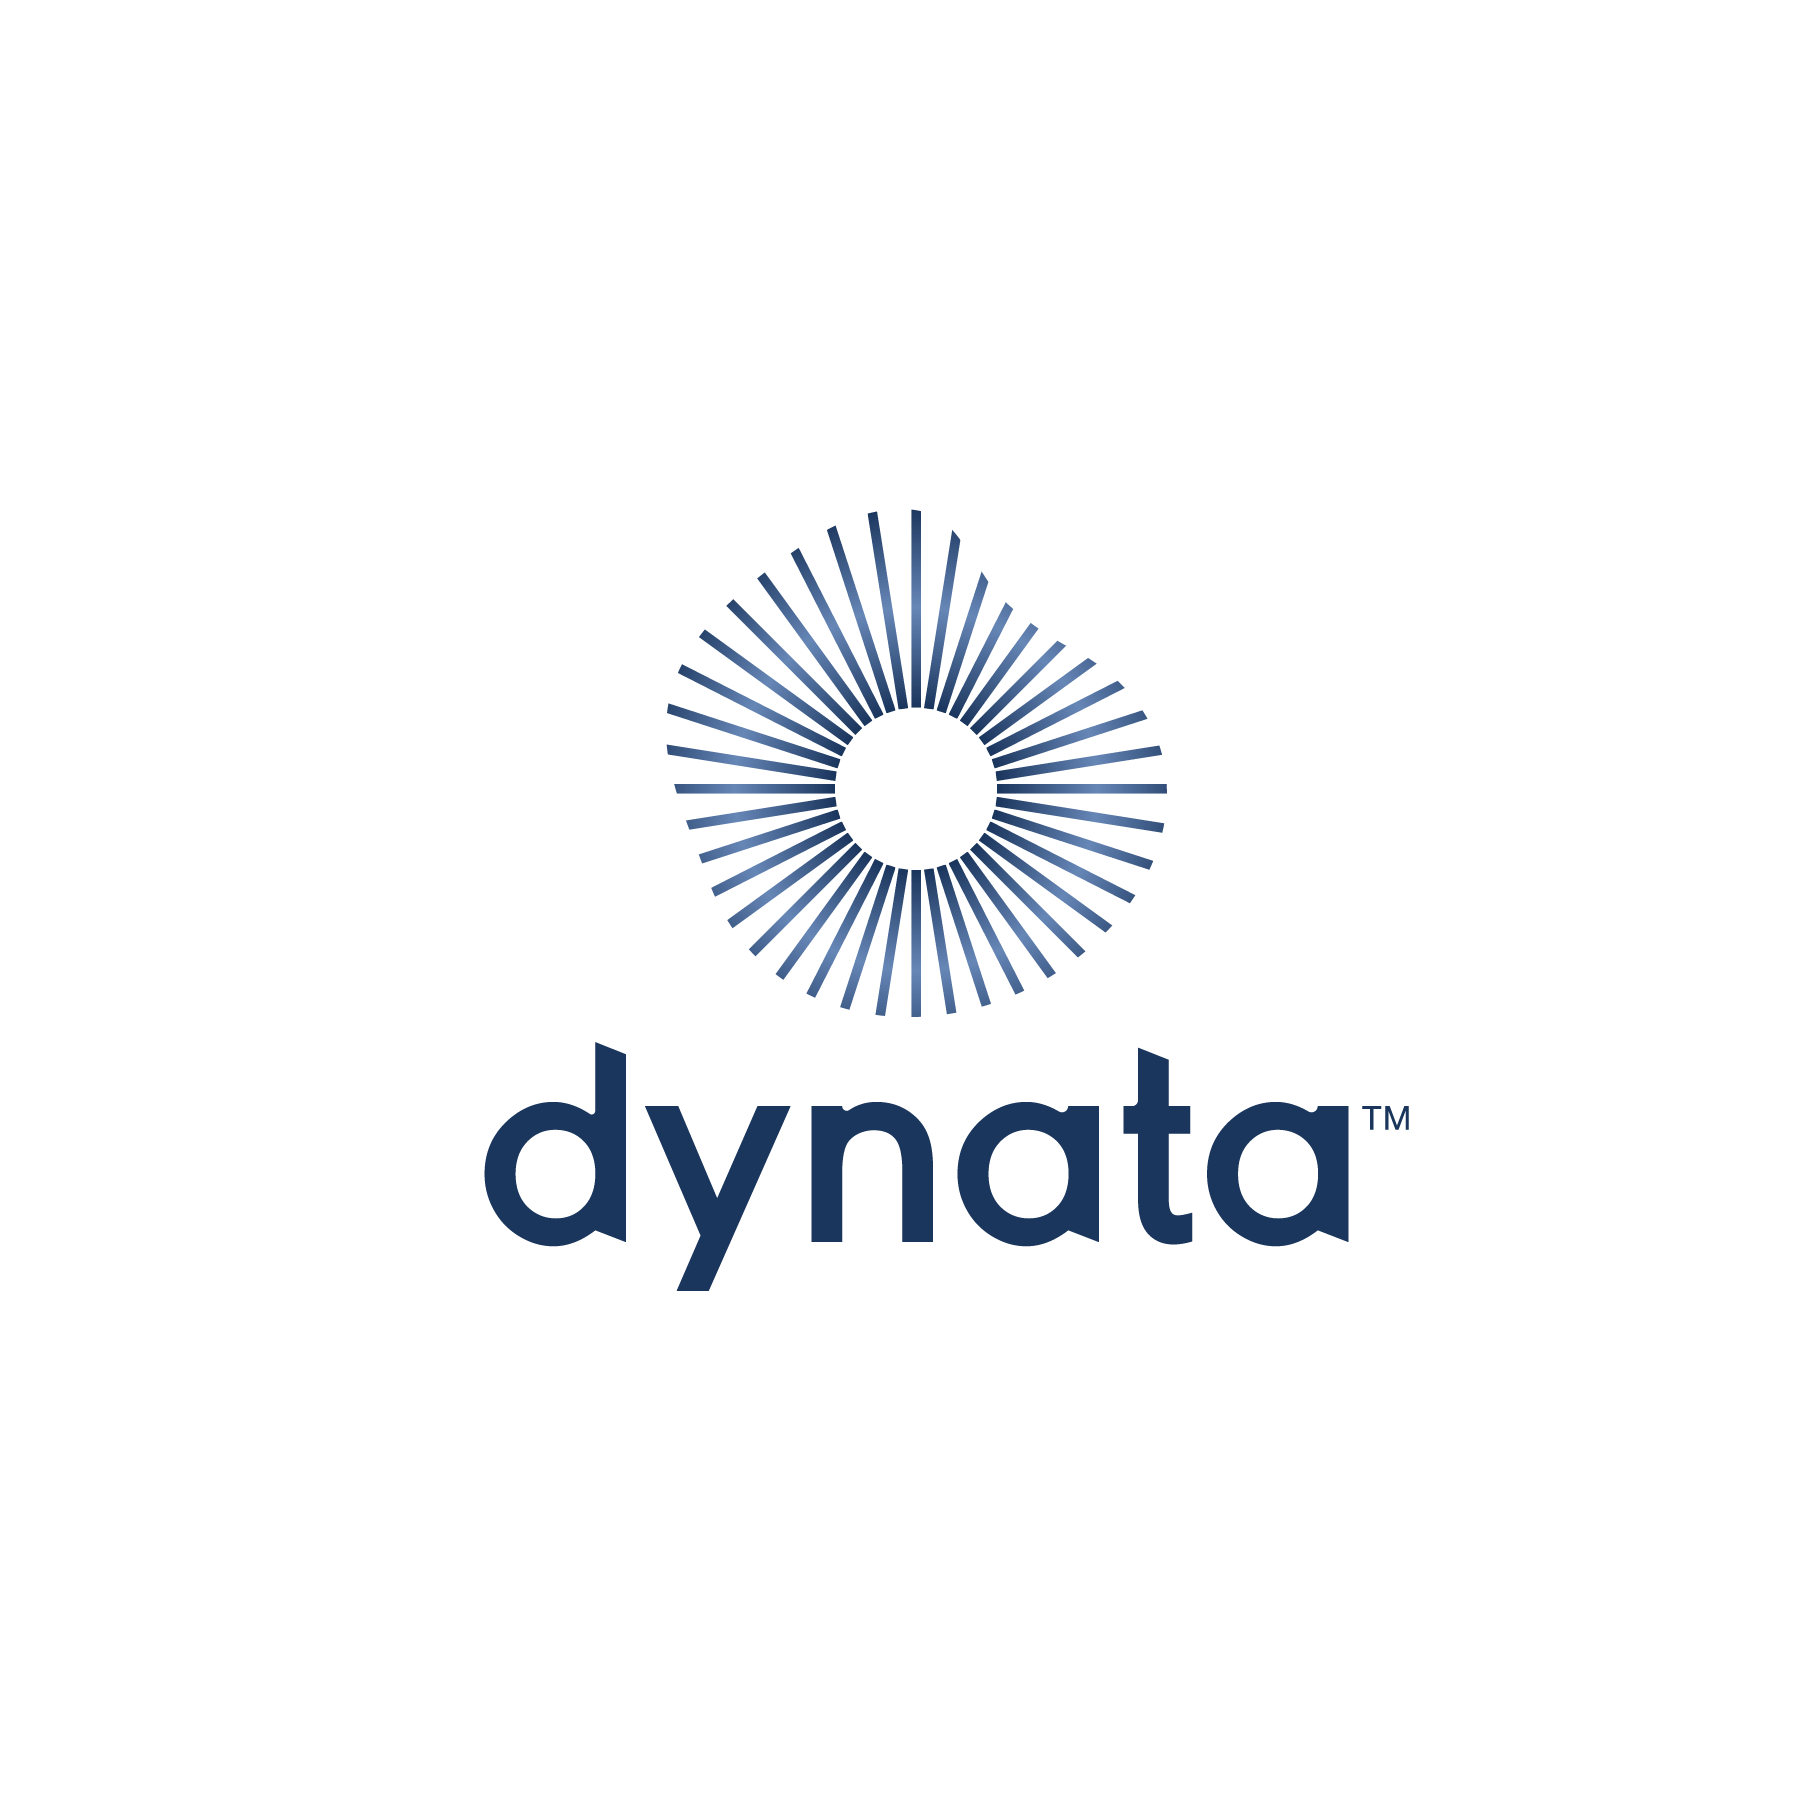 Research now and SSI become dynata